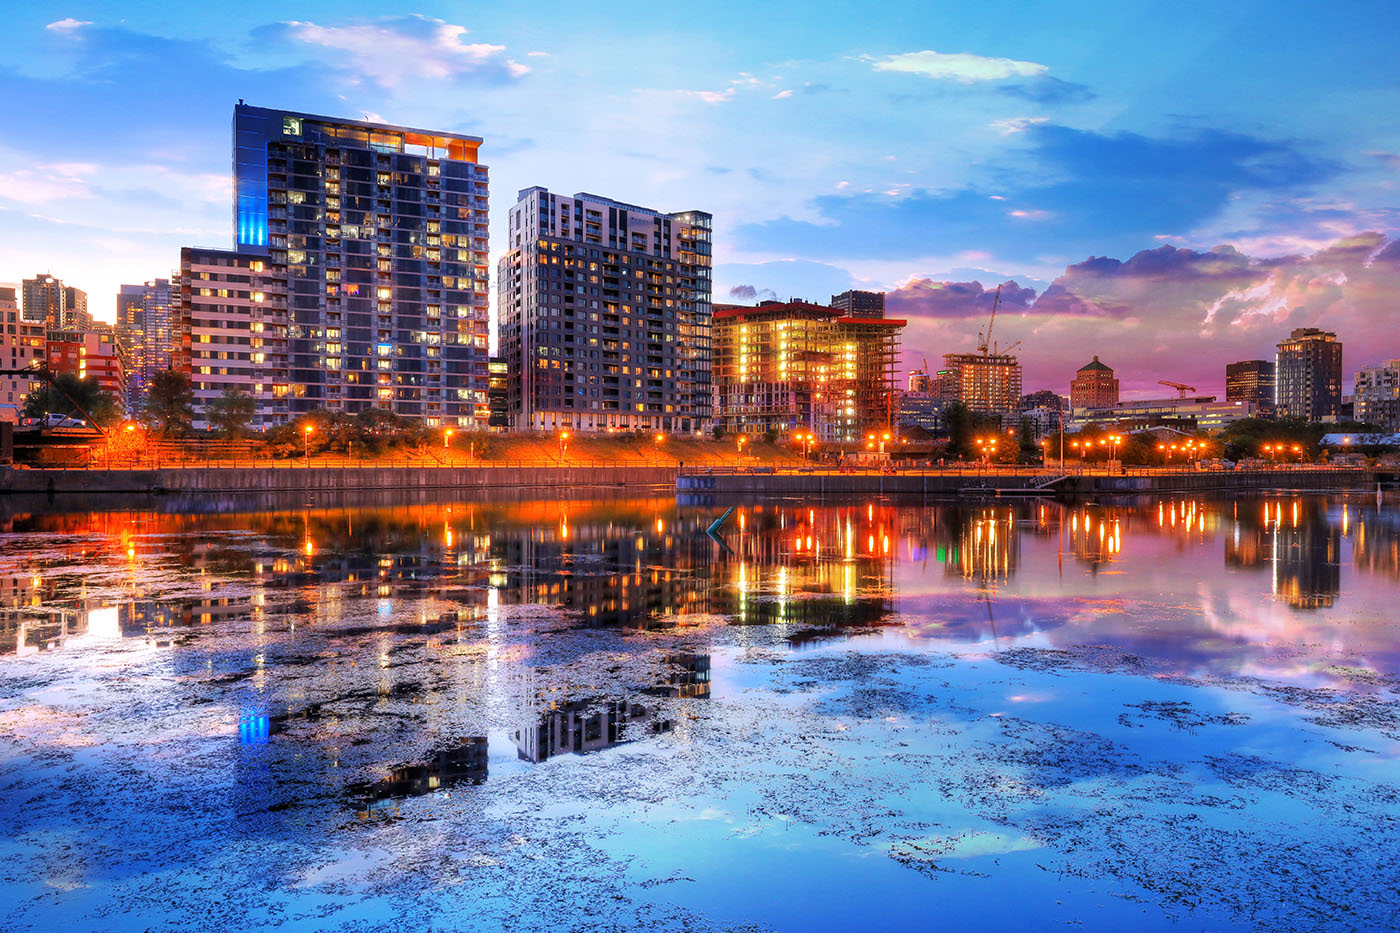 2020 Downtown Montreal City Water Reflection at Sunset - Stock Photo